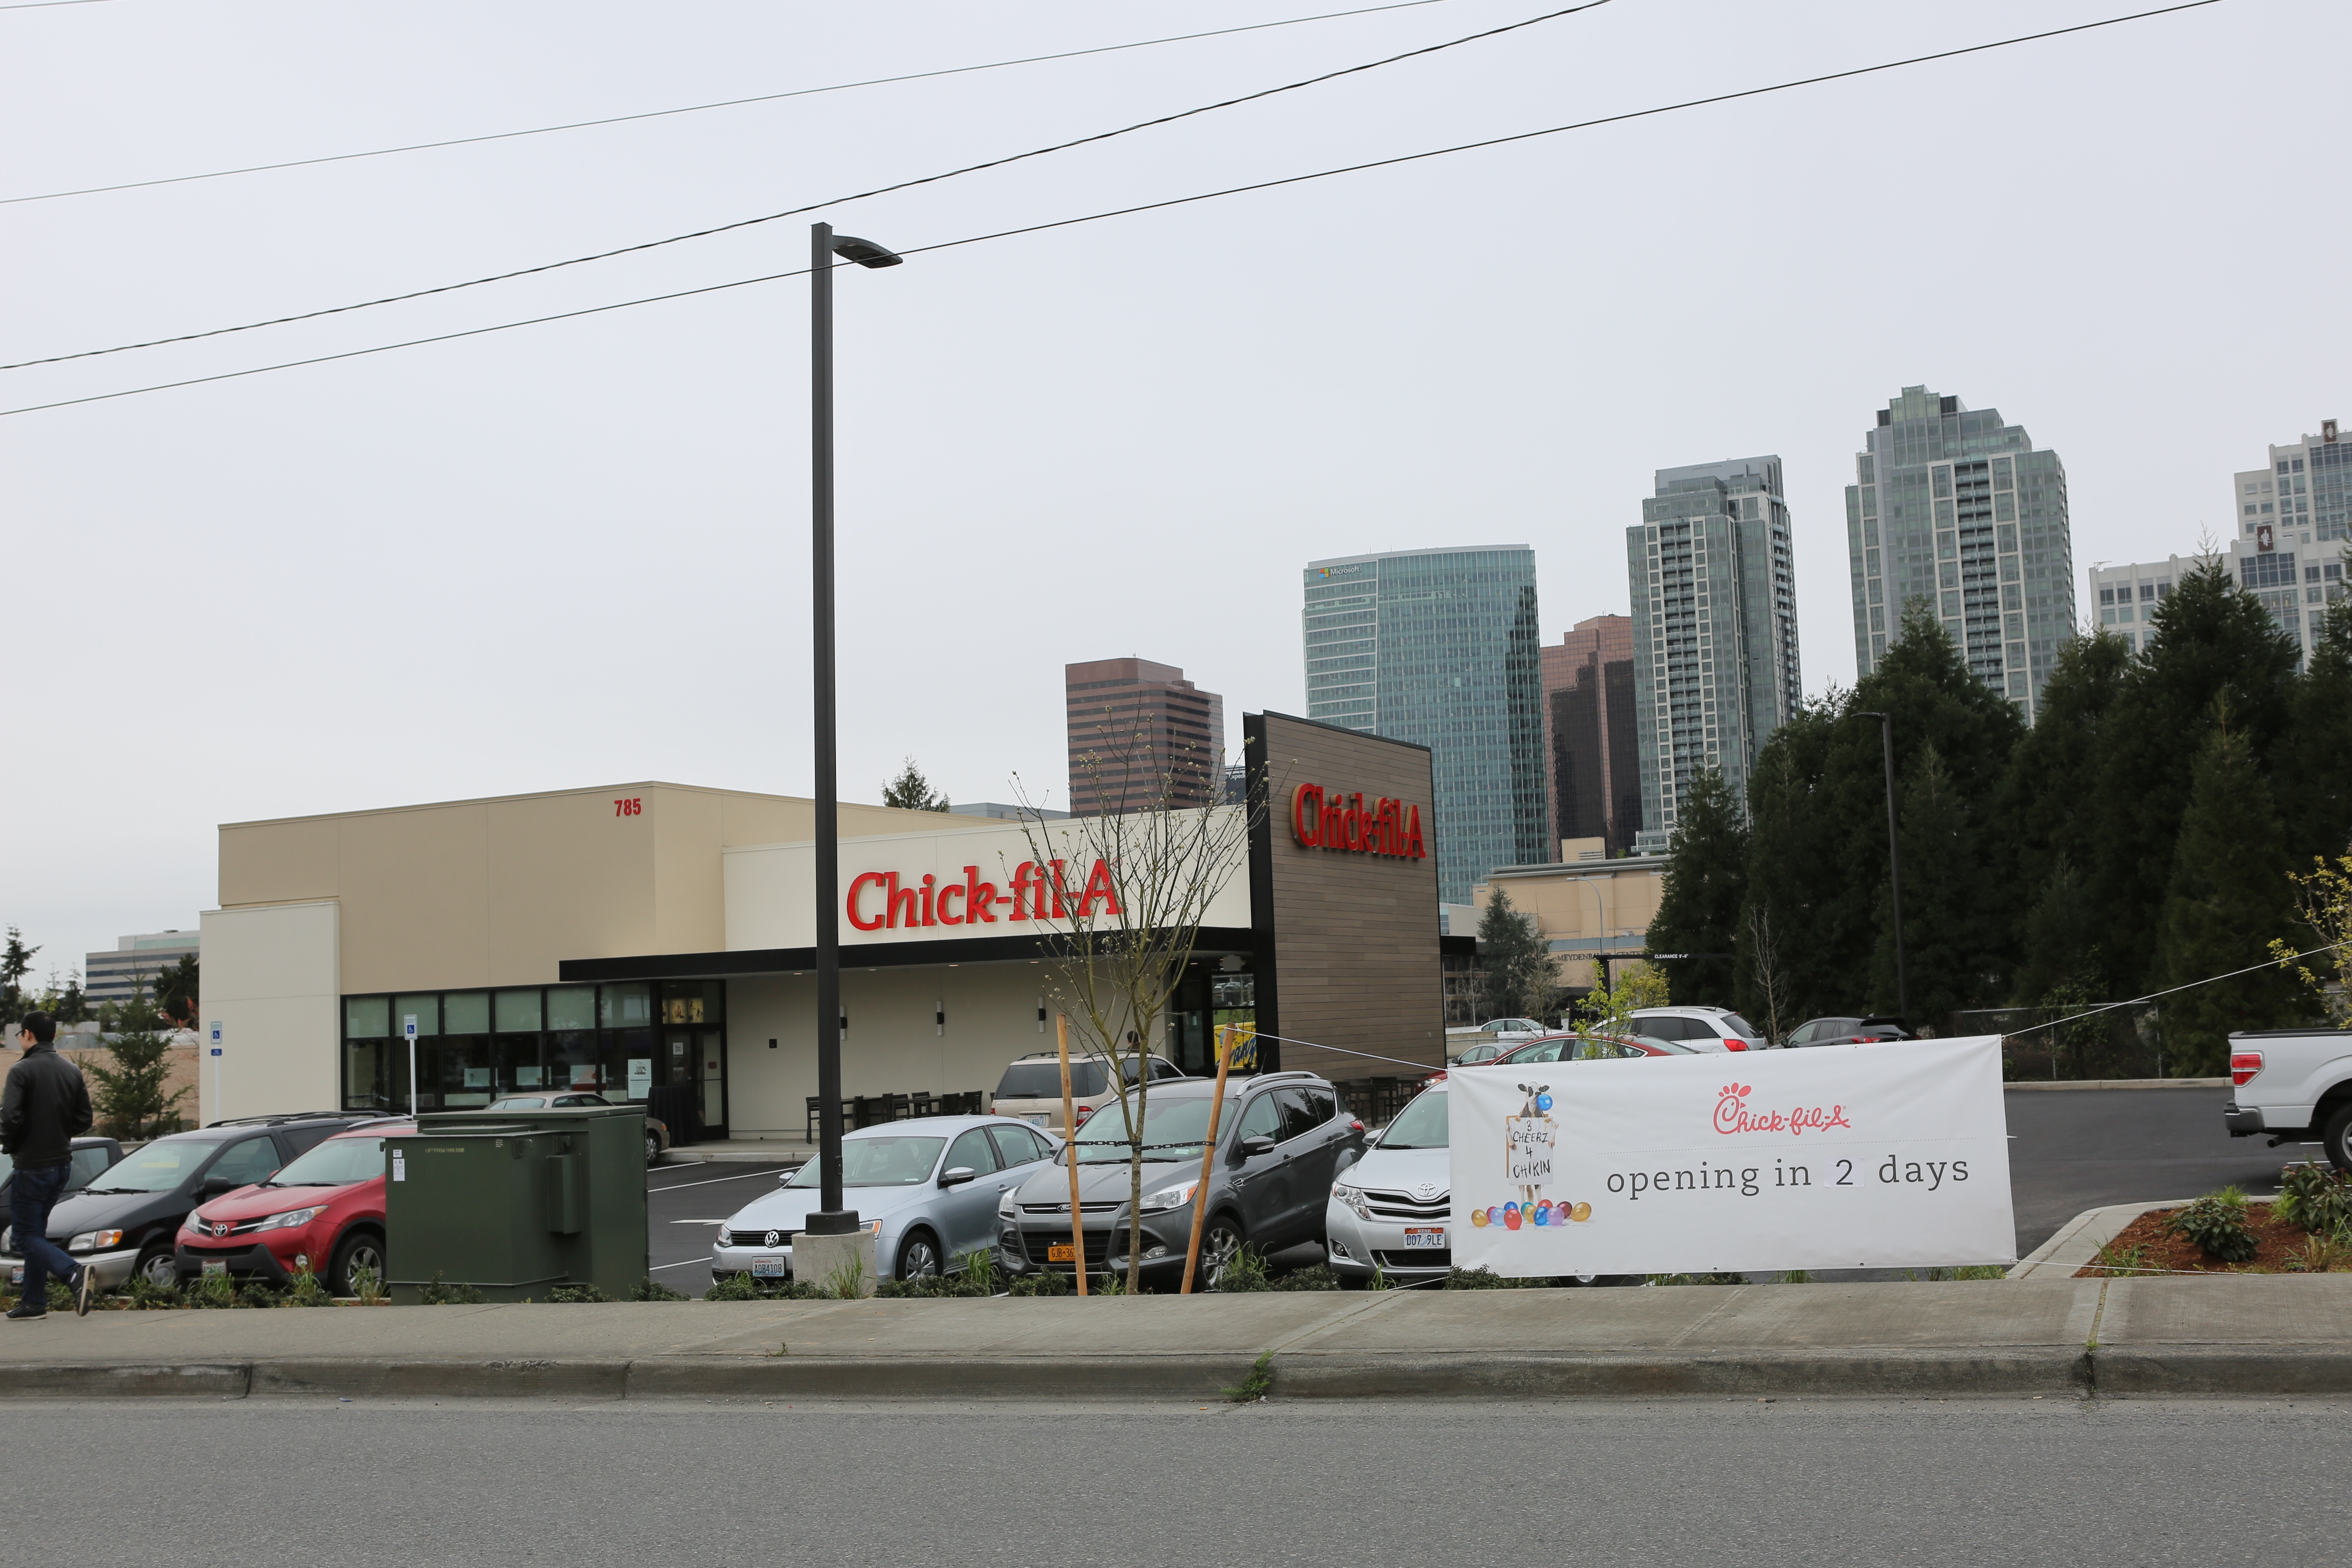 Exterior Photo of Chick-Fil-A